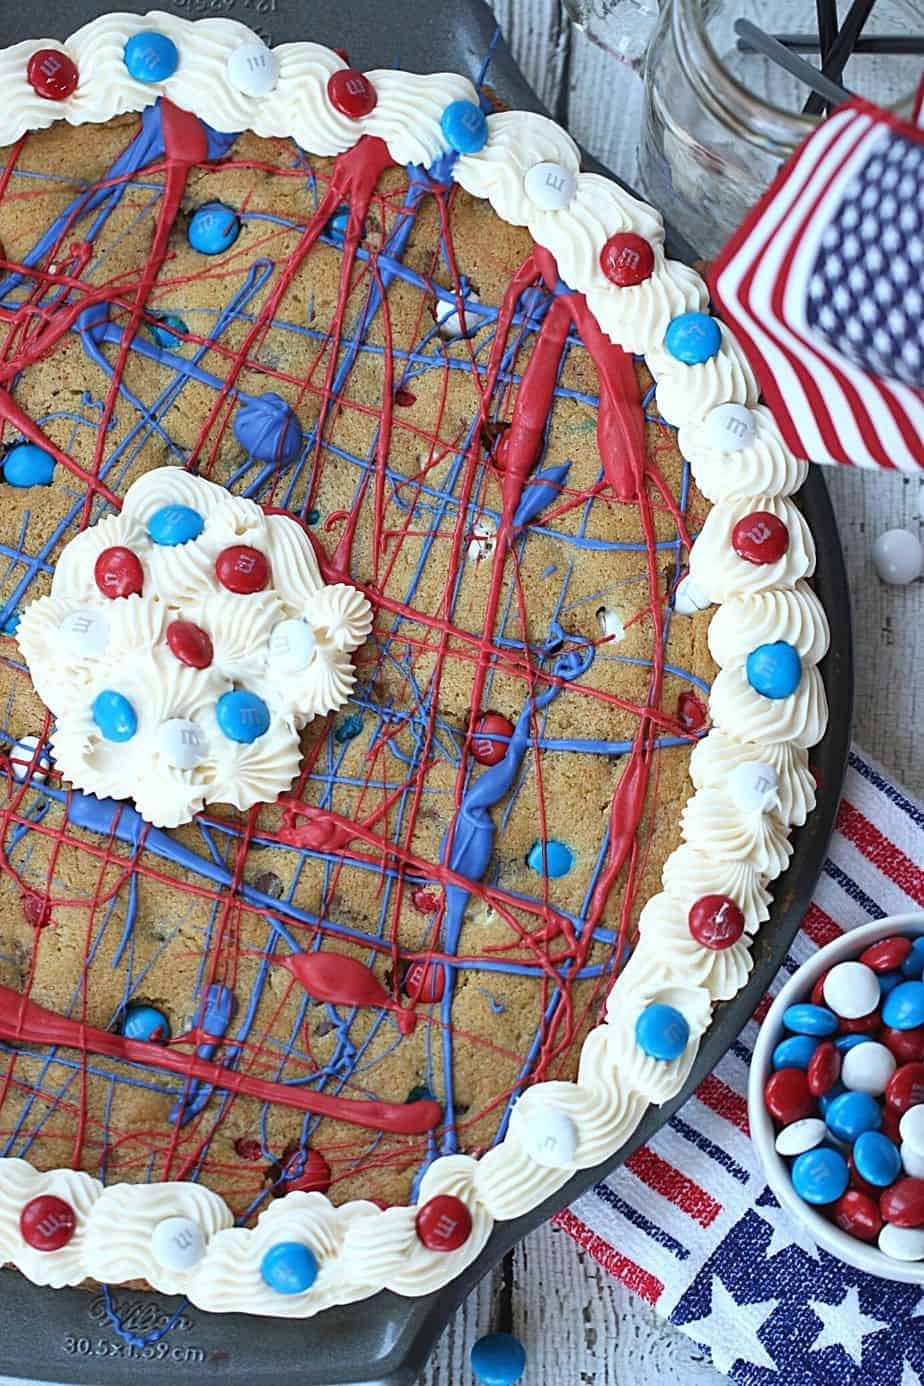 This festive Firecracker Cookie Cake recipe is the perfect dessert for your patriotic celebration! This easy chocolate chip cookie is decorated in red, white and blue and is a perfect recipe for the 4th of July, Memorial Day or Labor Day.